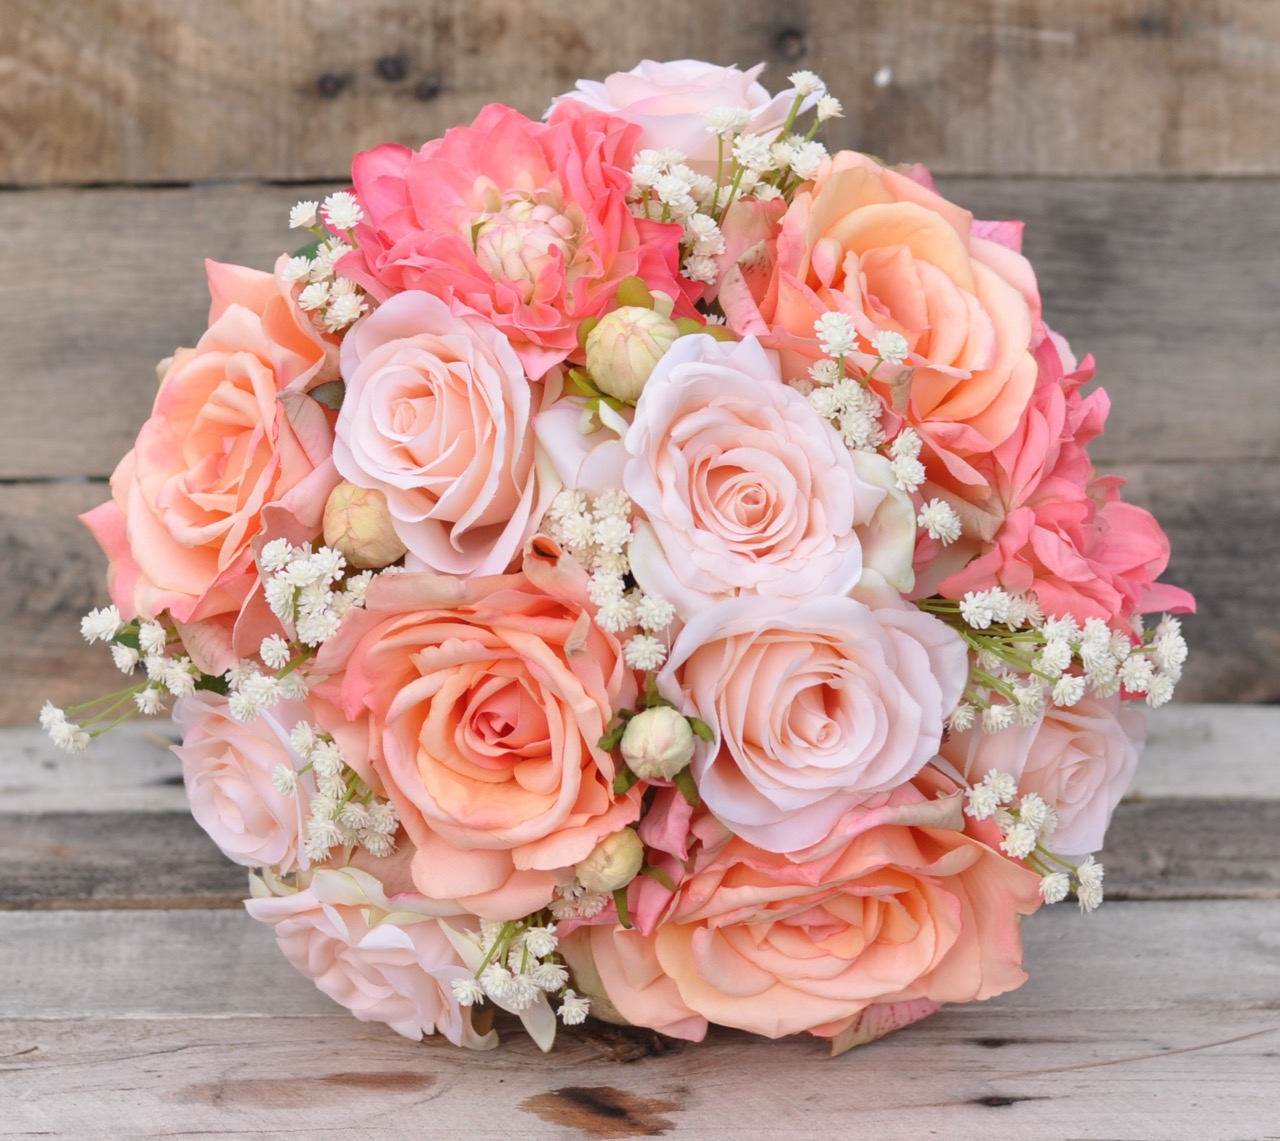 Making A Wedding Bouquet With Silk Flowers: Silk Bridal Bouquet With Peach Roses, Coral Dahlias